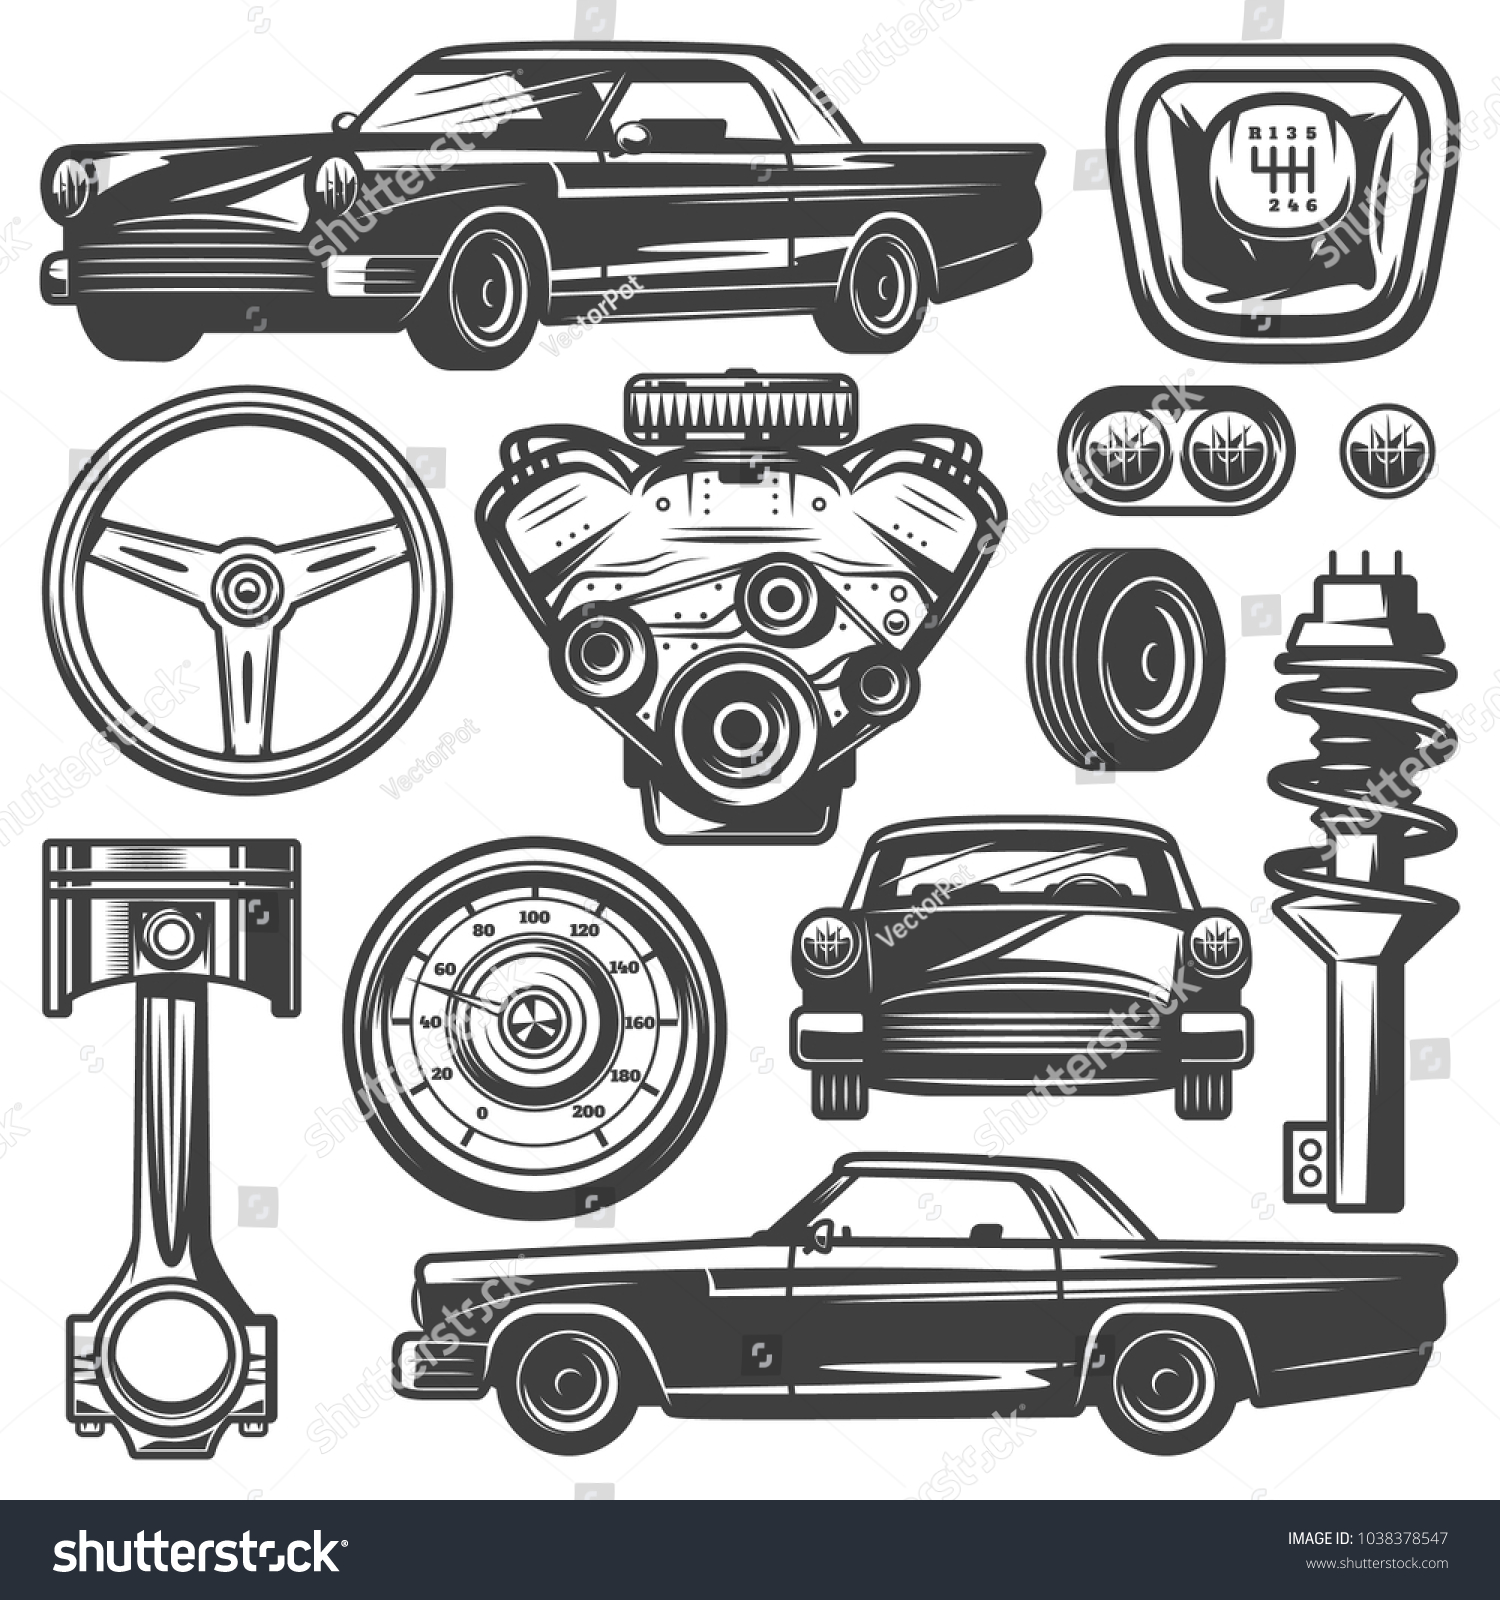 Vintage Car Components Collection Witn Automobile Stock Vector ...